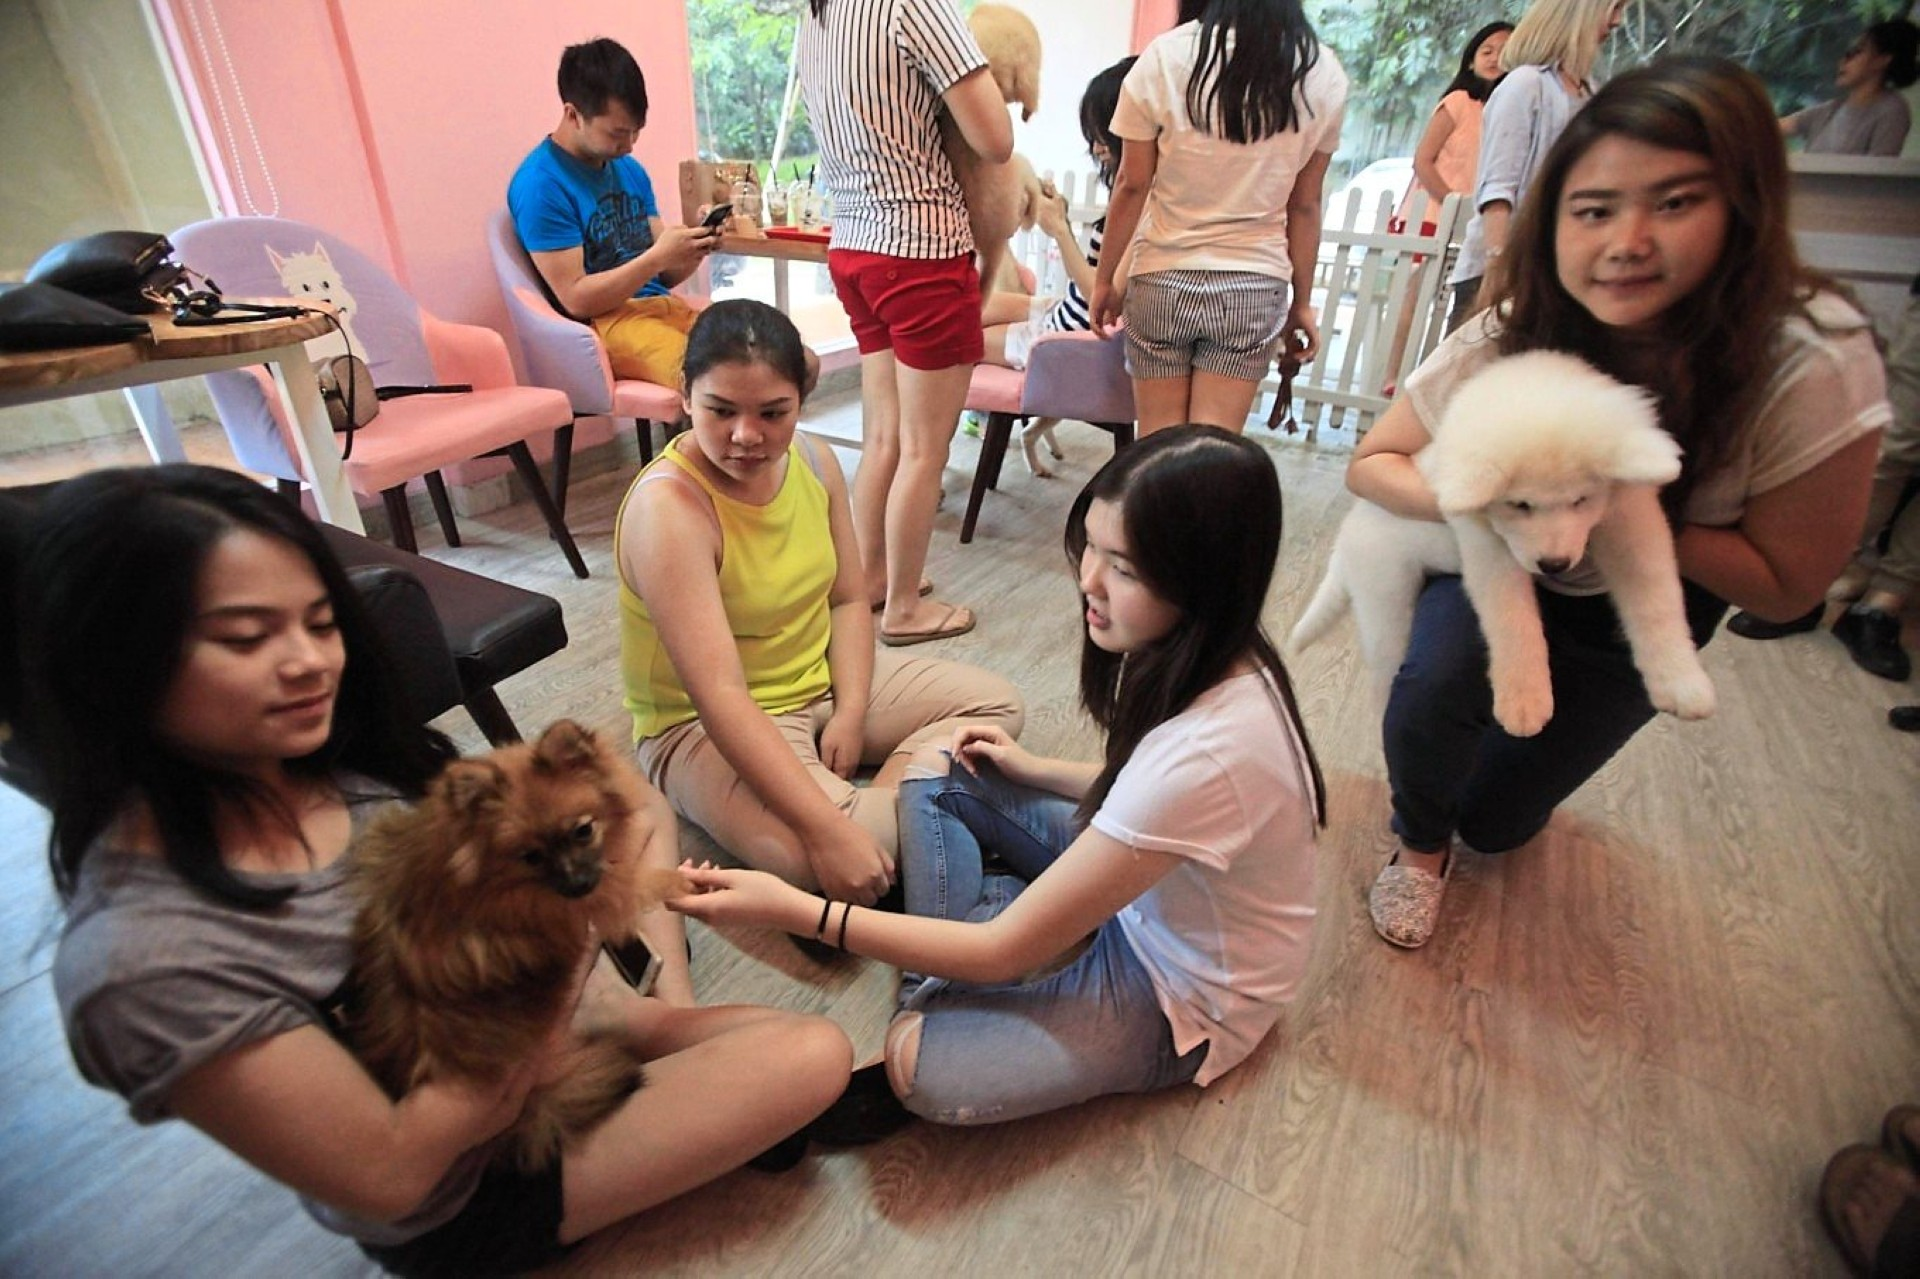 Coffee and beagle: Animal-friendly cafes jazz up meal time for pet lovers